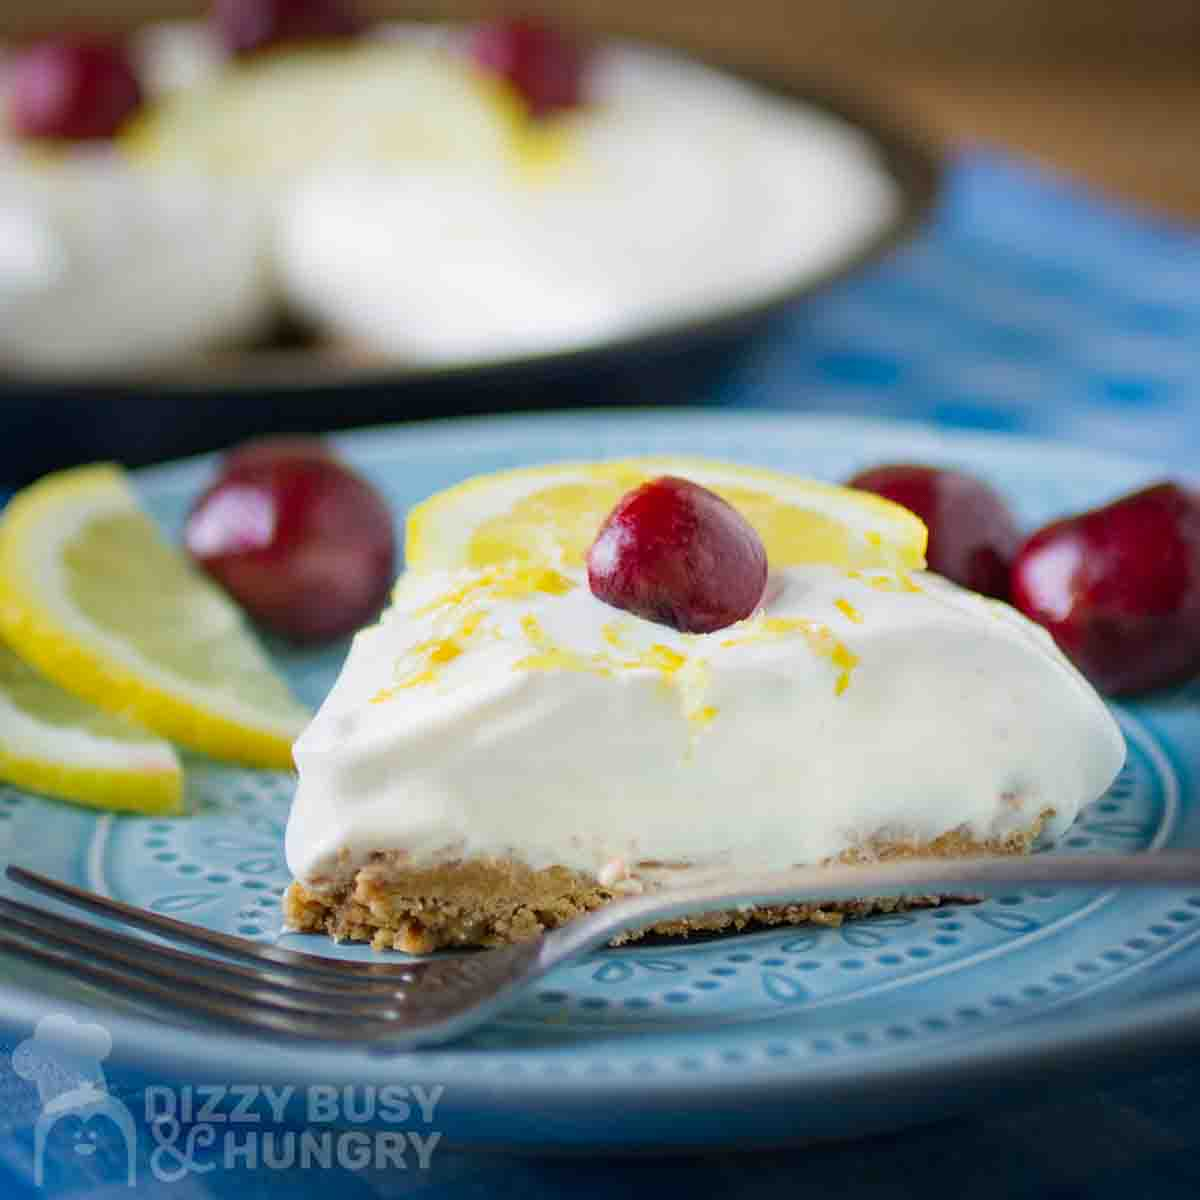 Side close up shot of a slice of lemon pie garnished with a whole cherry on a blue plate with a fork, lemon slices, and more cherries on the side.